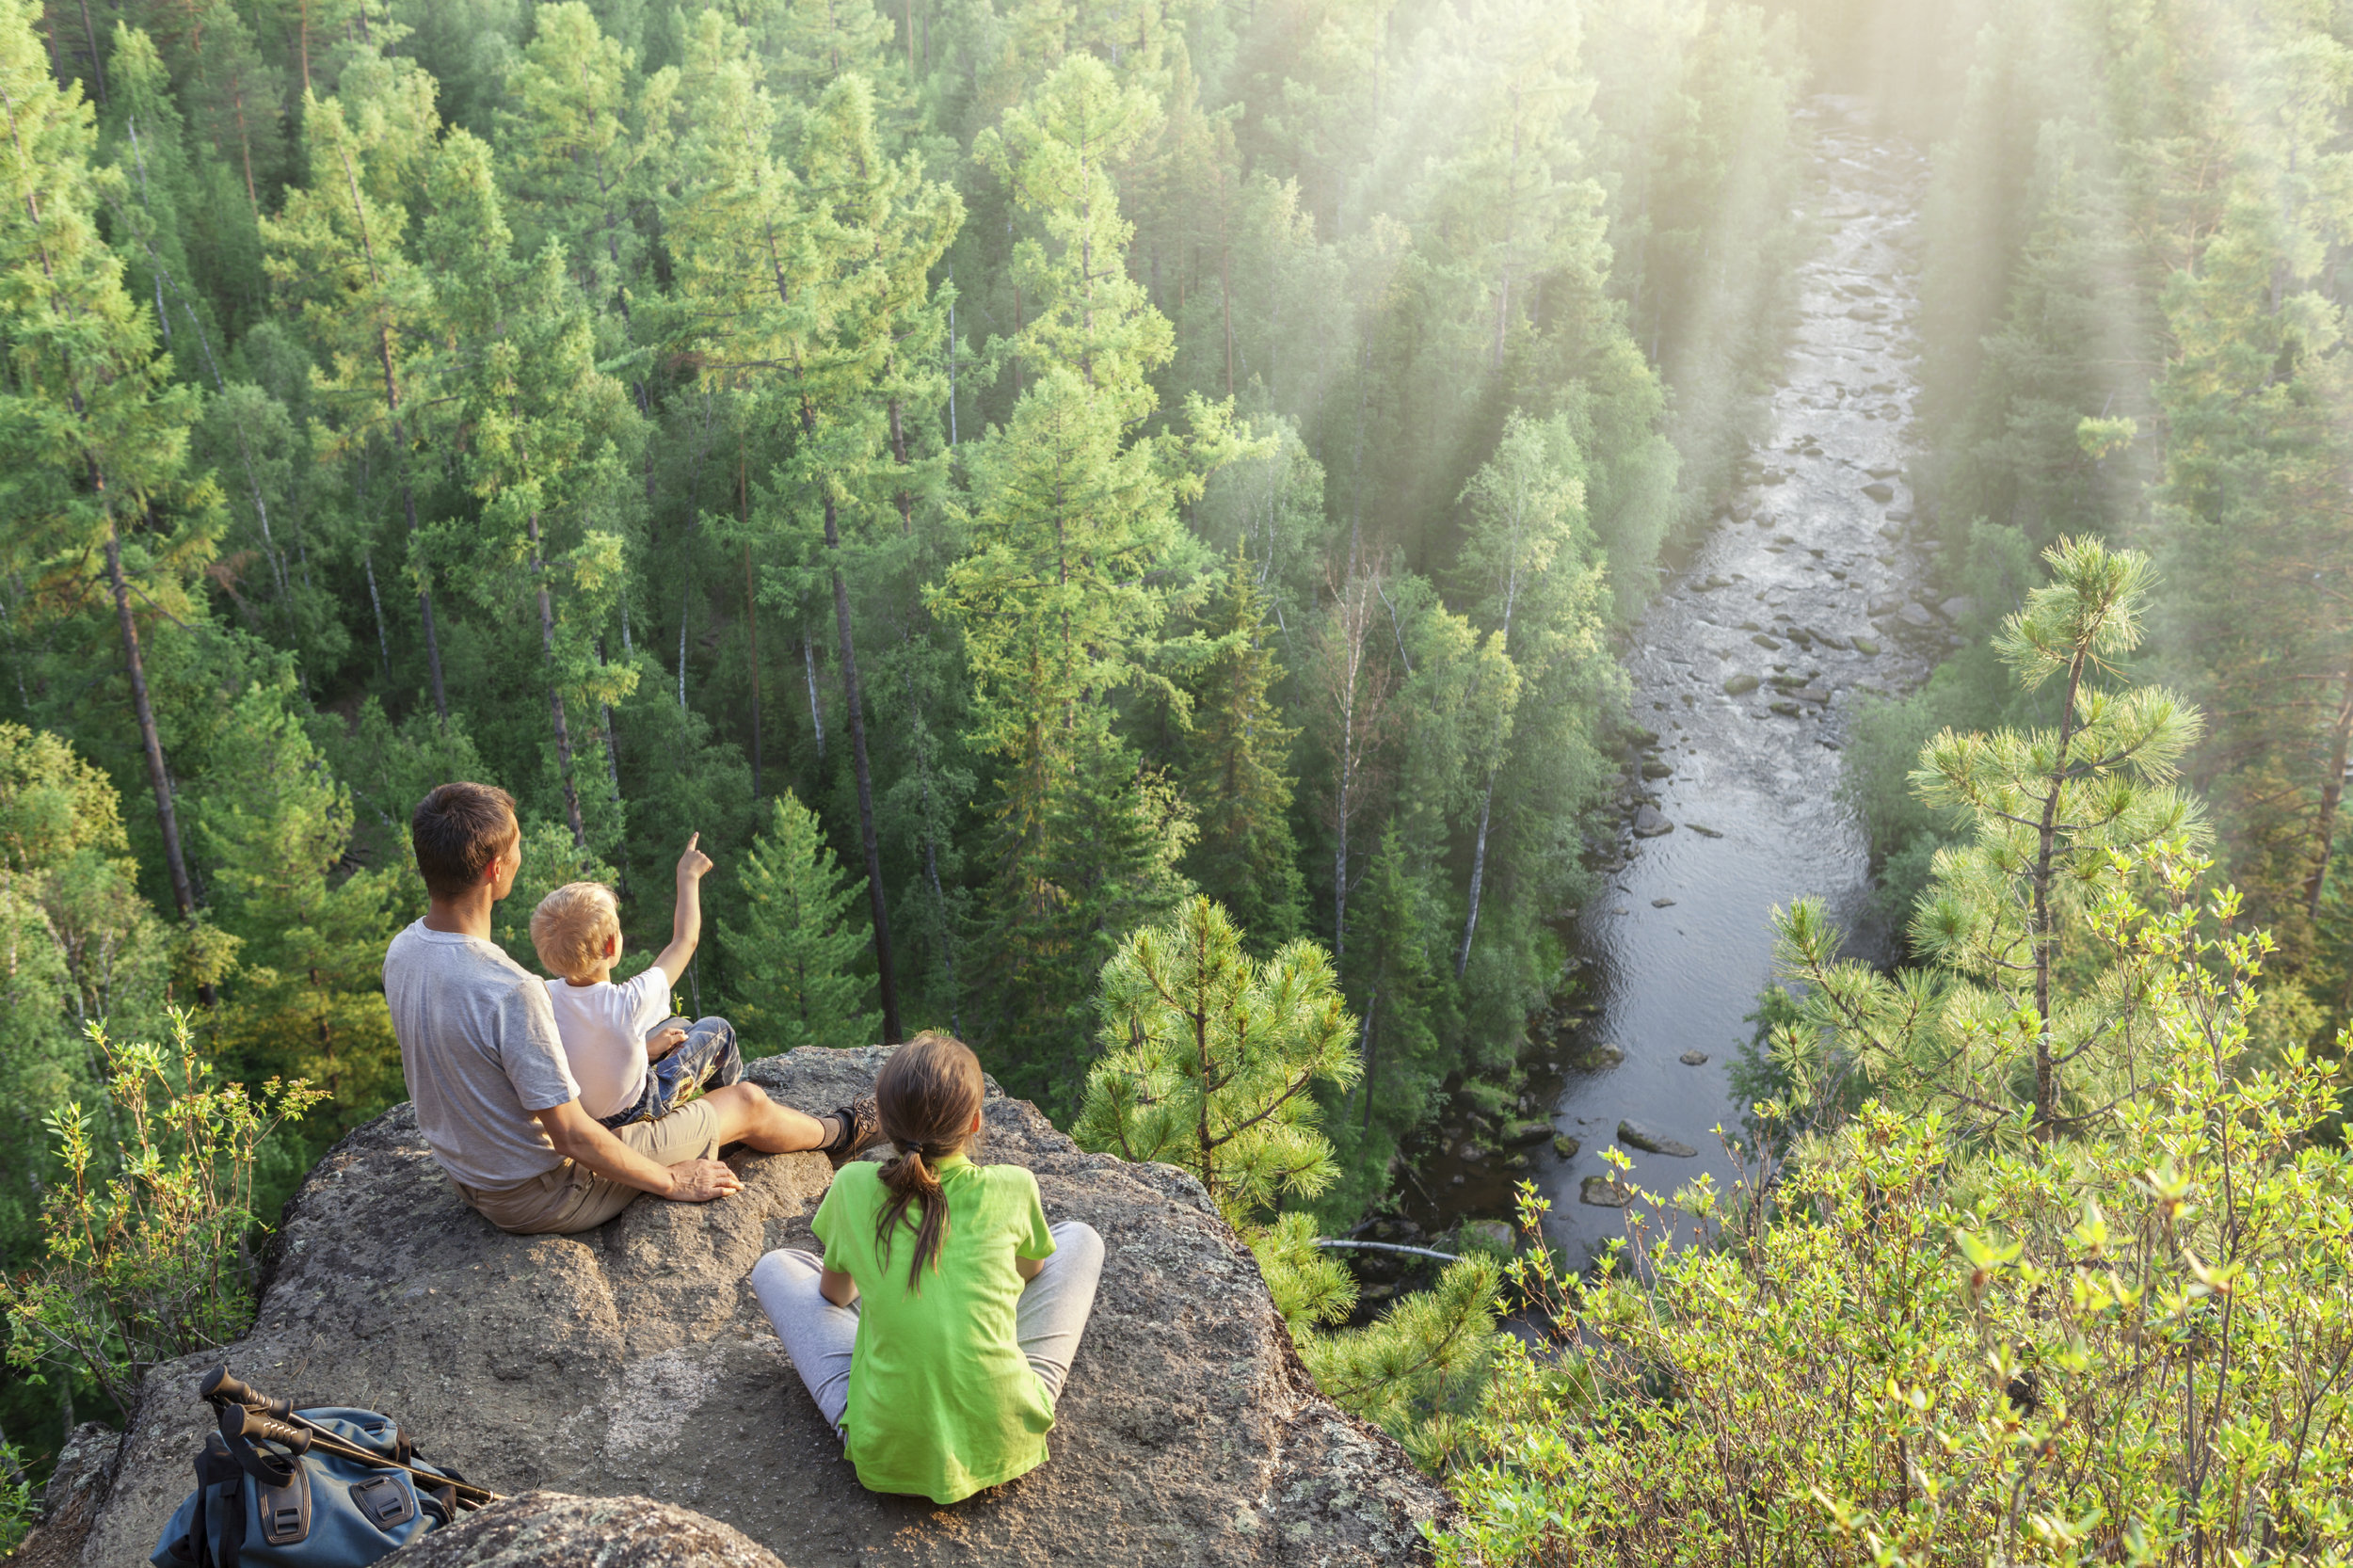 Family-of-backpackers-look-at-beautiful-view-000044064078_Large.jpg